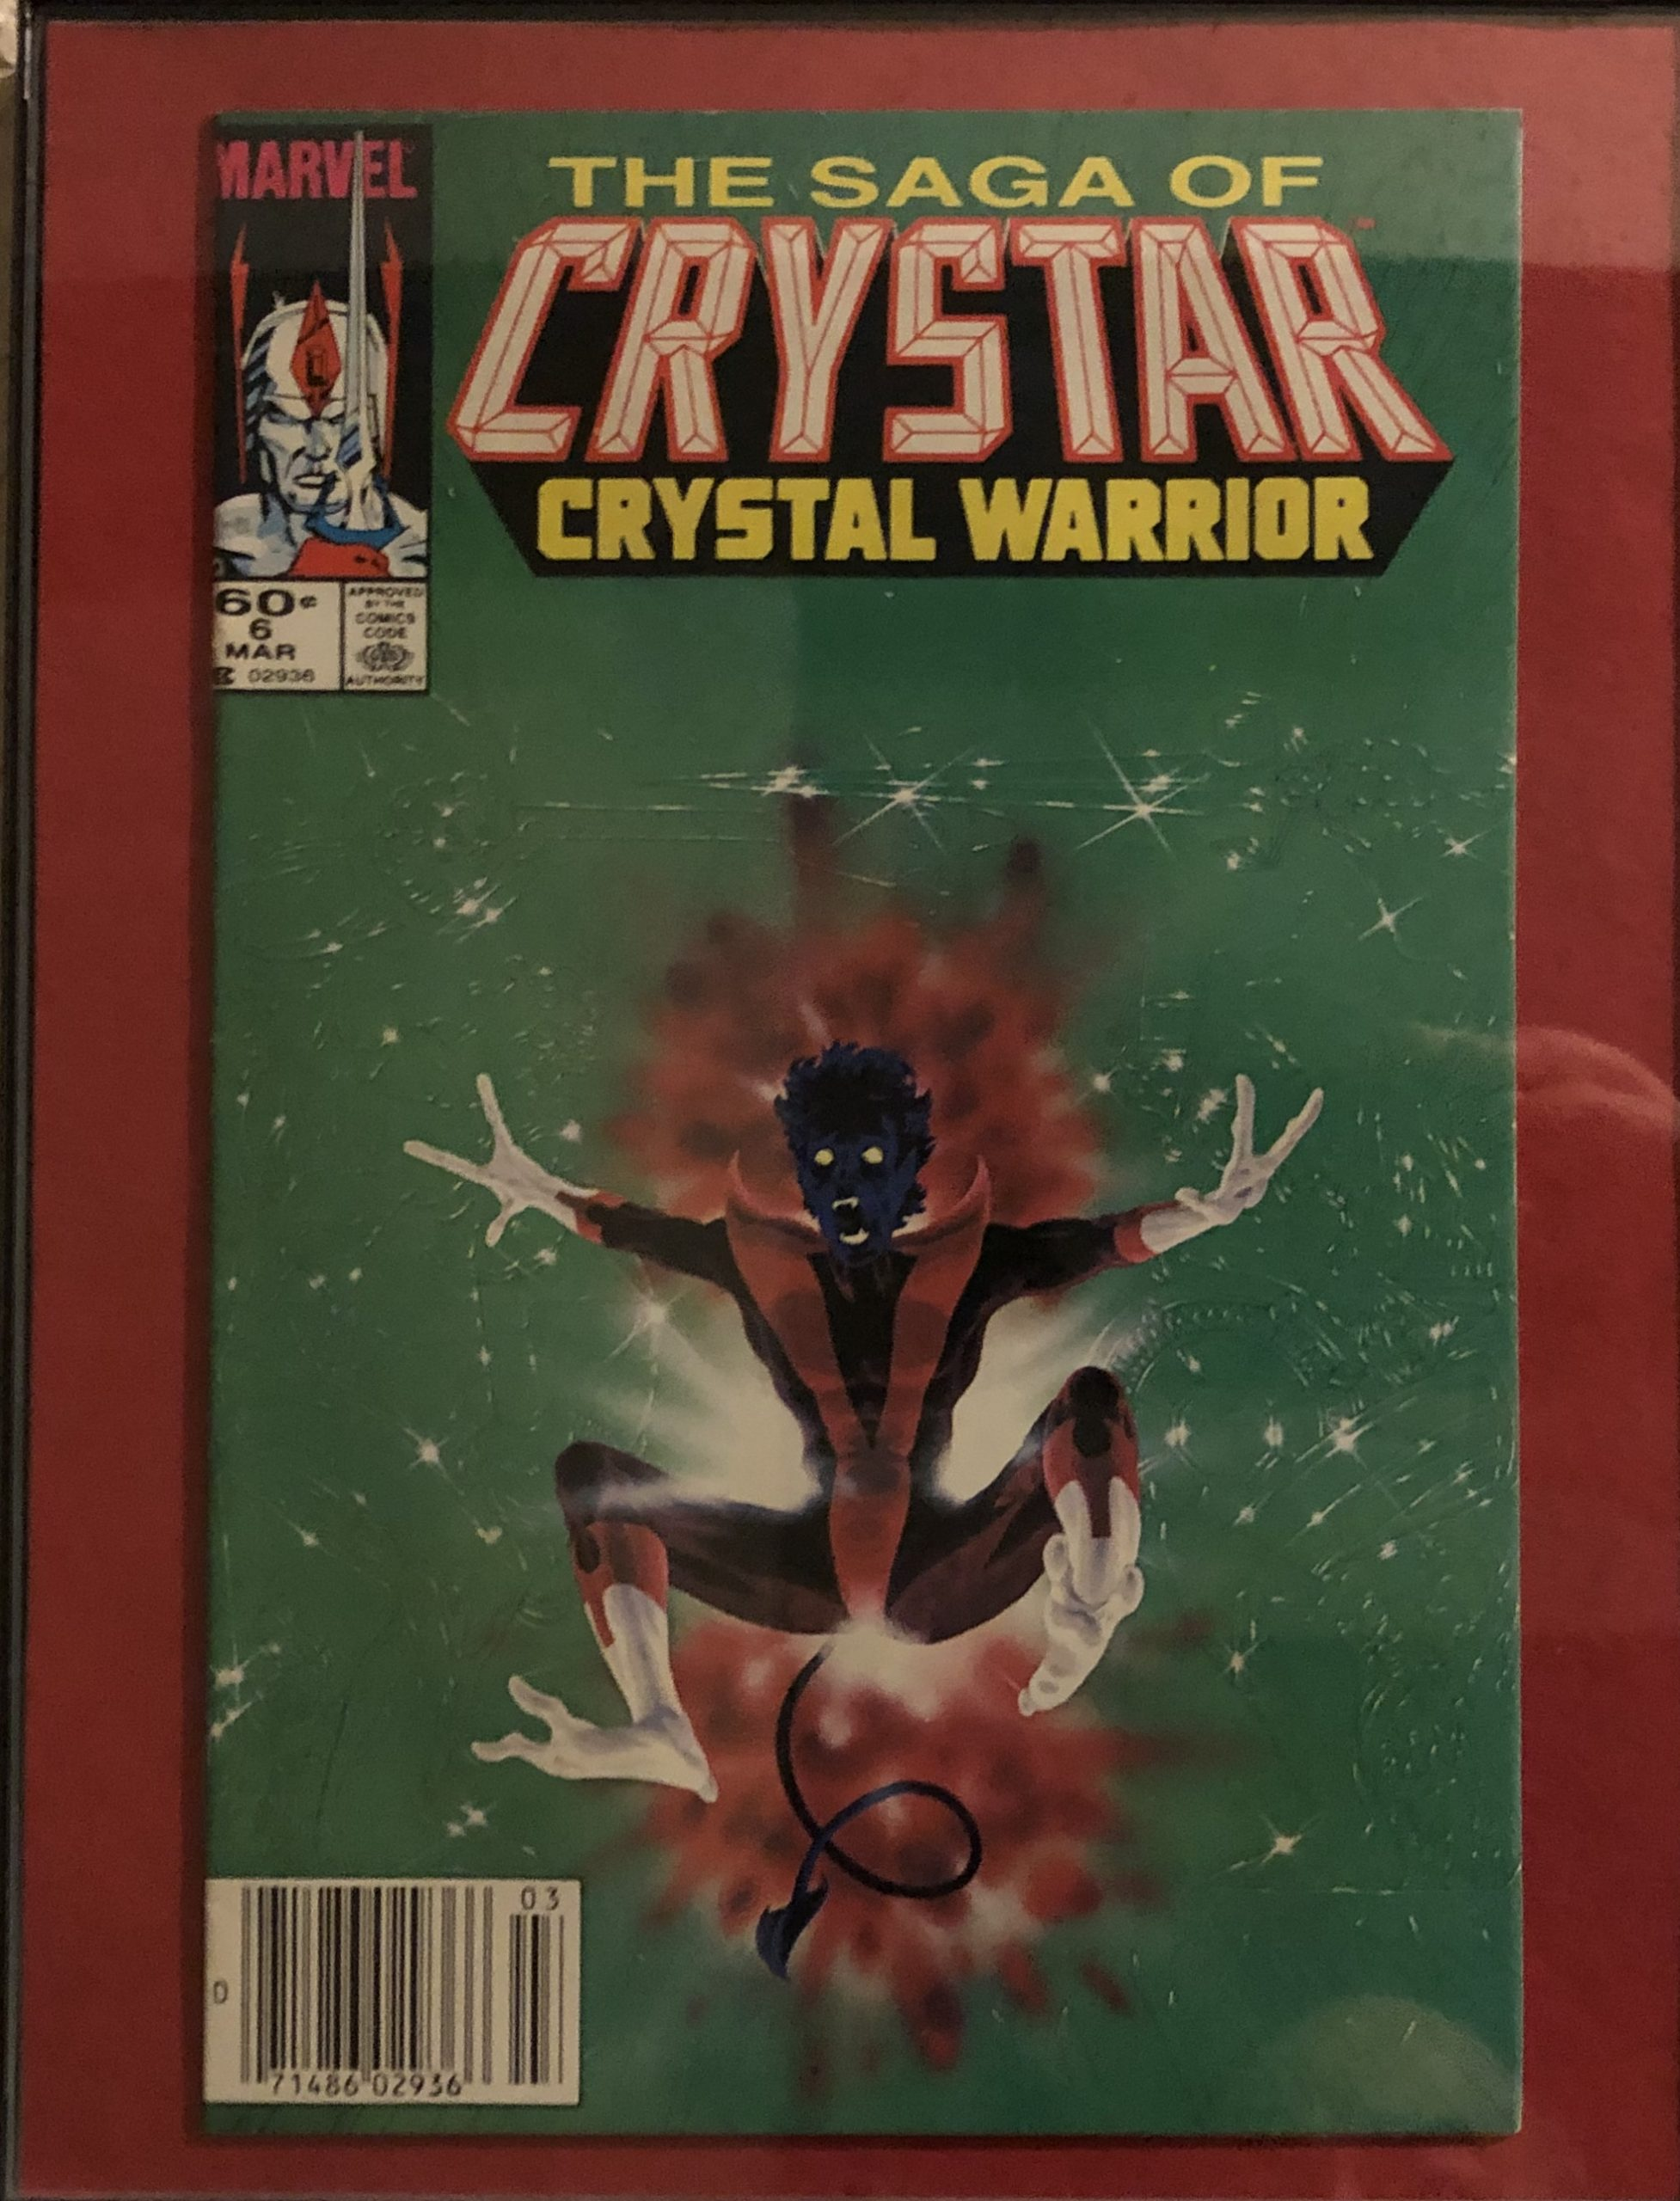 The Saga of Crystar Crystal Warrior 6 Michael Golden